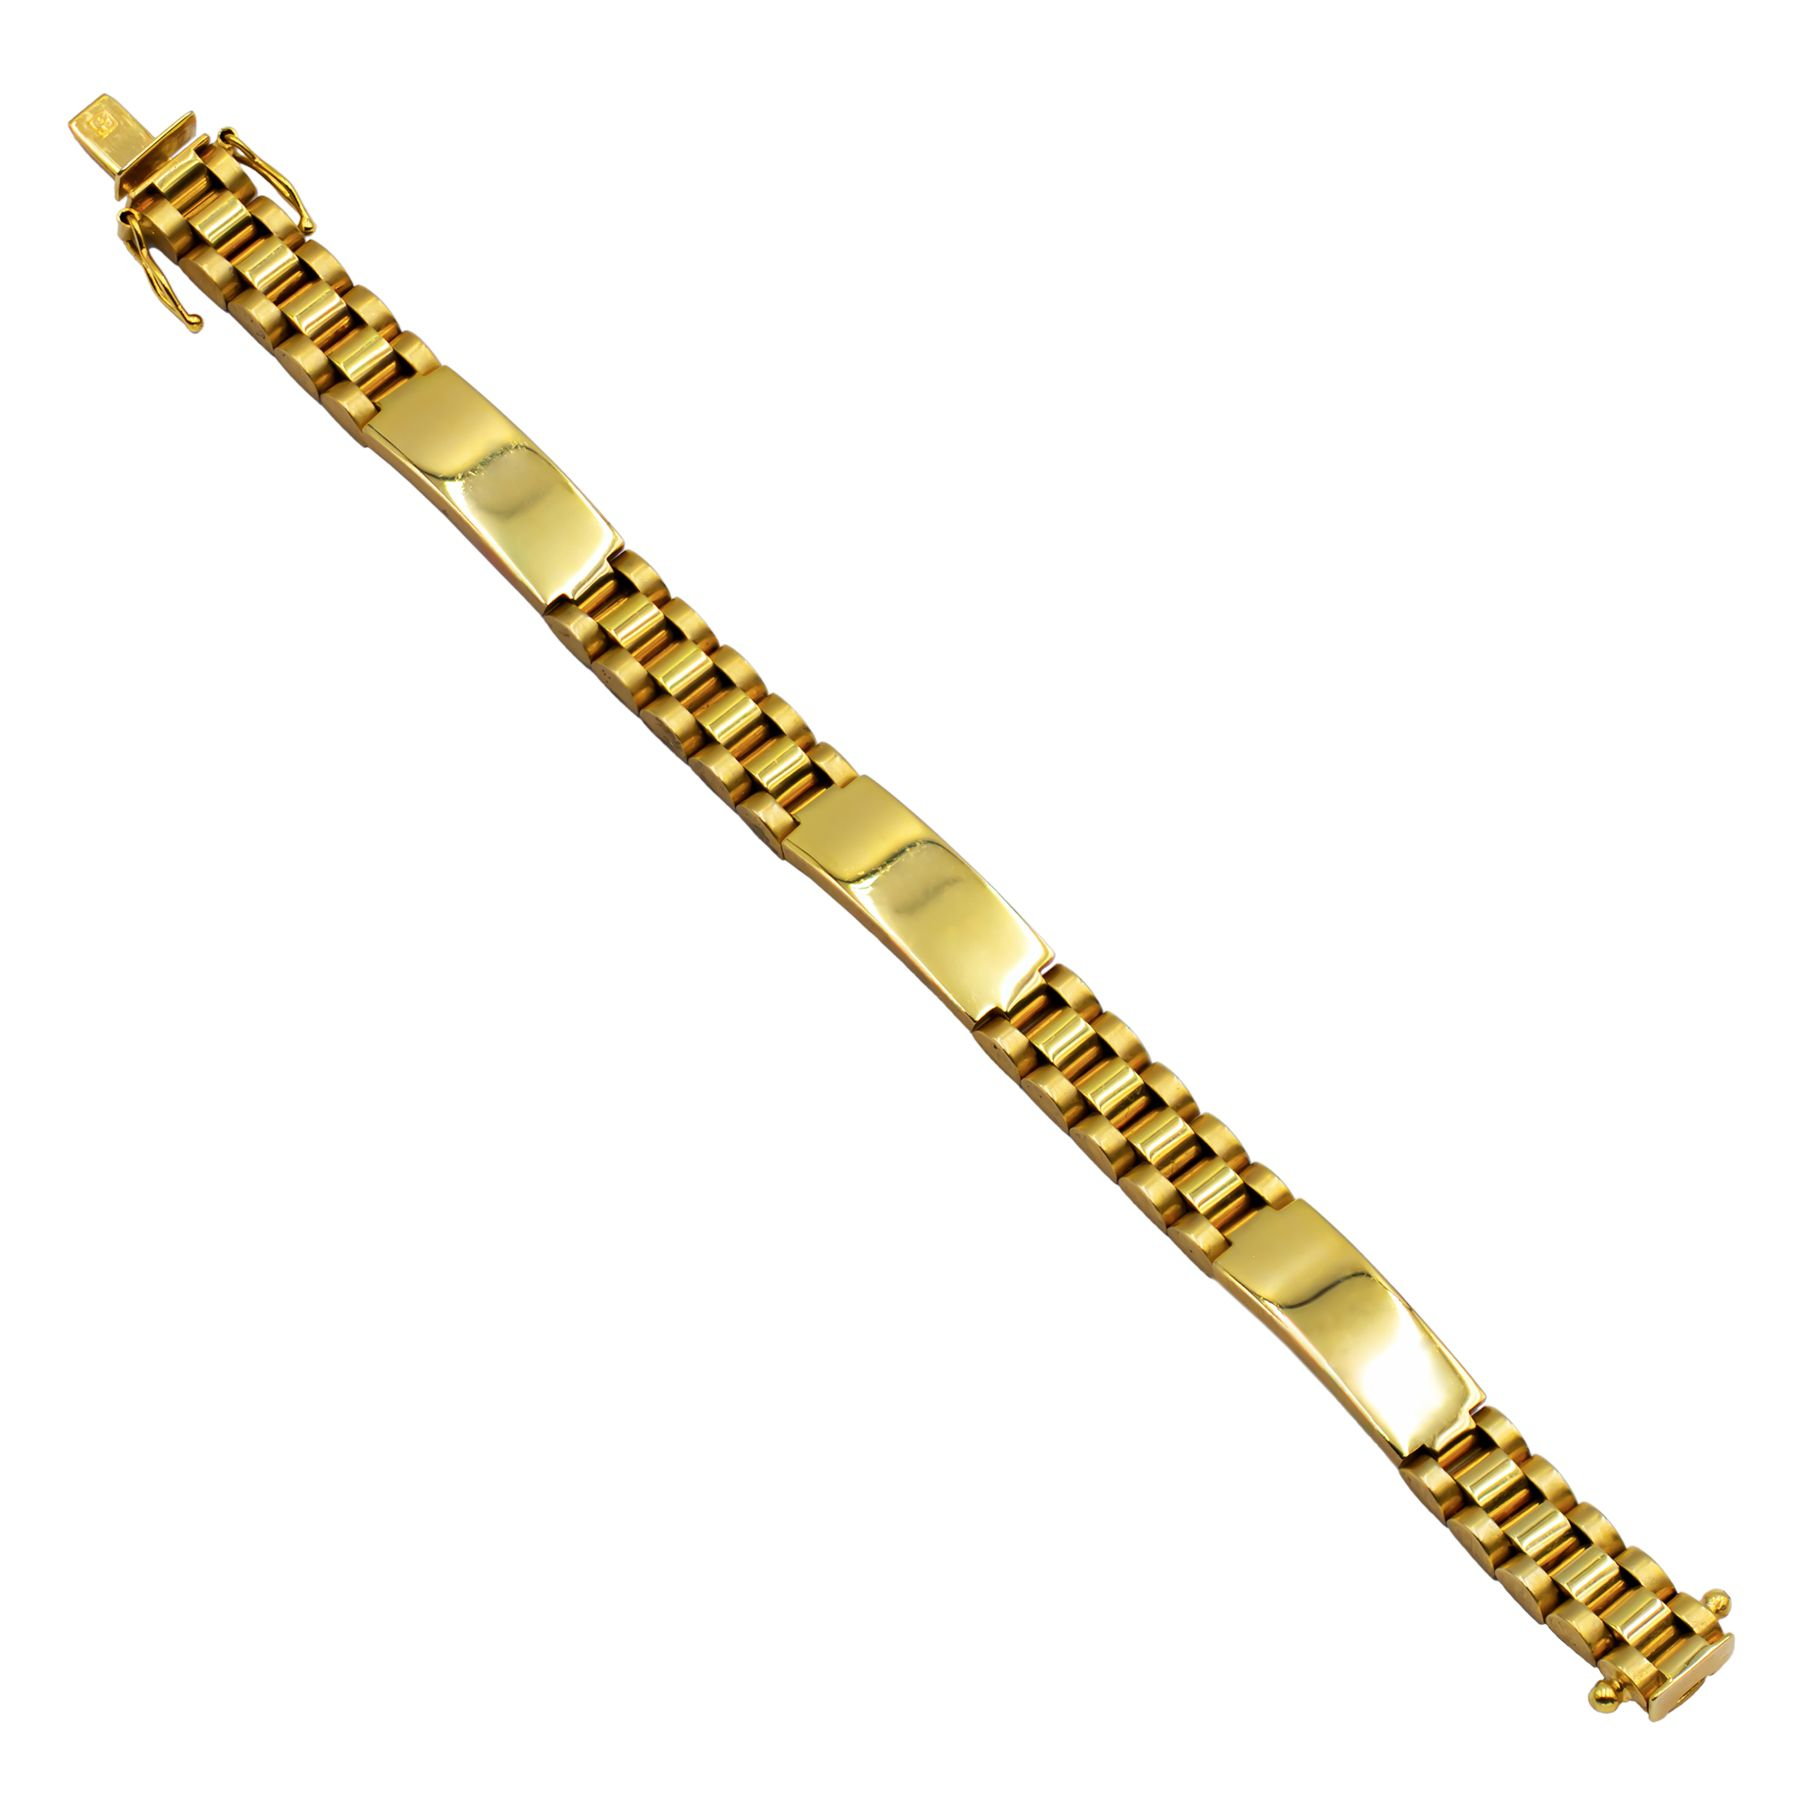 Pre-owned 9ct Yellow Gold Bracelet